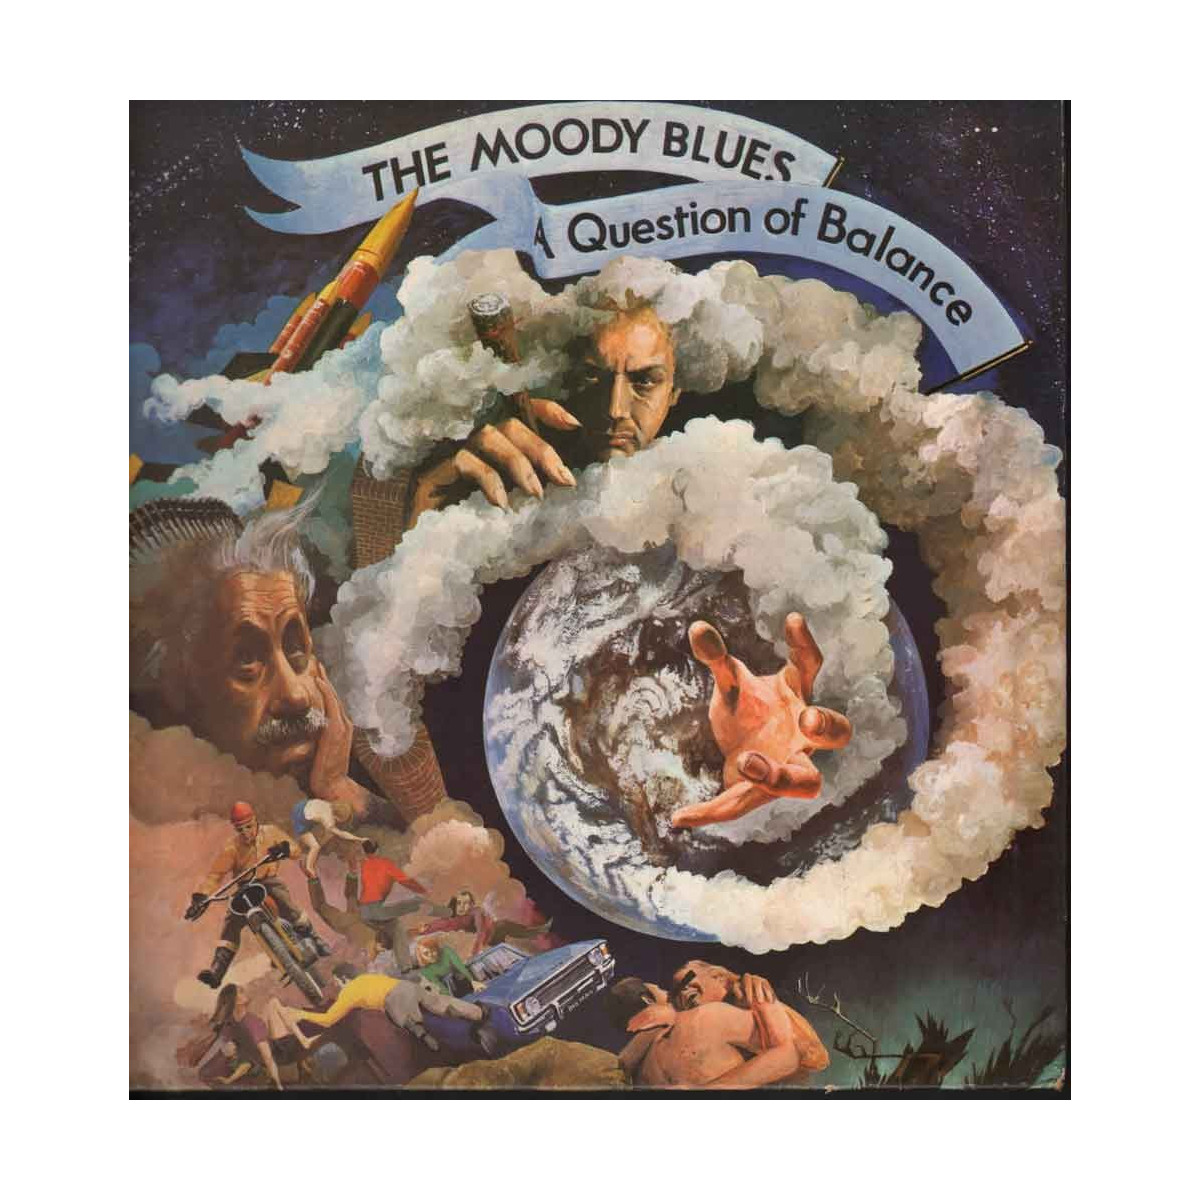 The Moody Blues Lp 33giri A Question Of Balance Nuovo Threshold THS 3